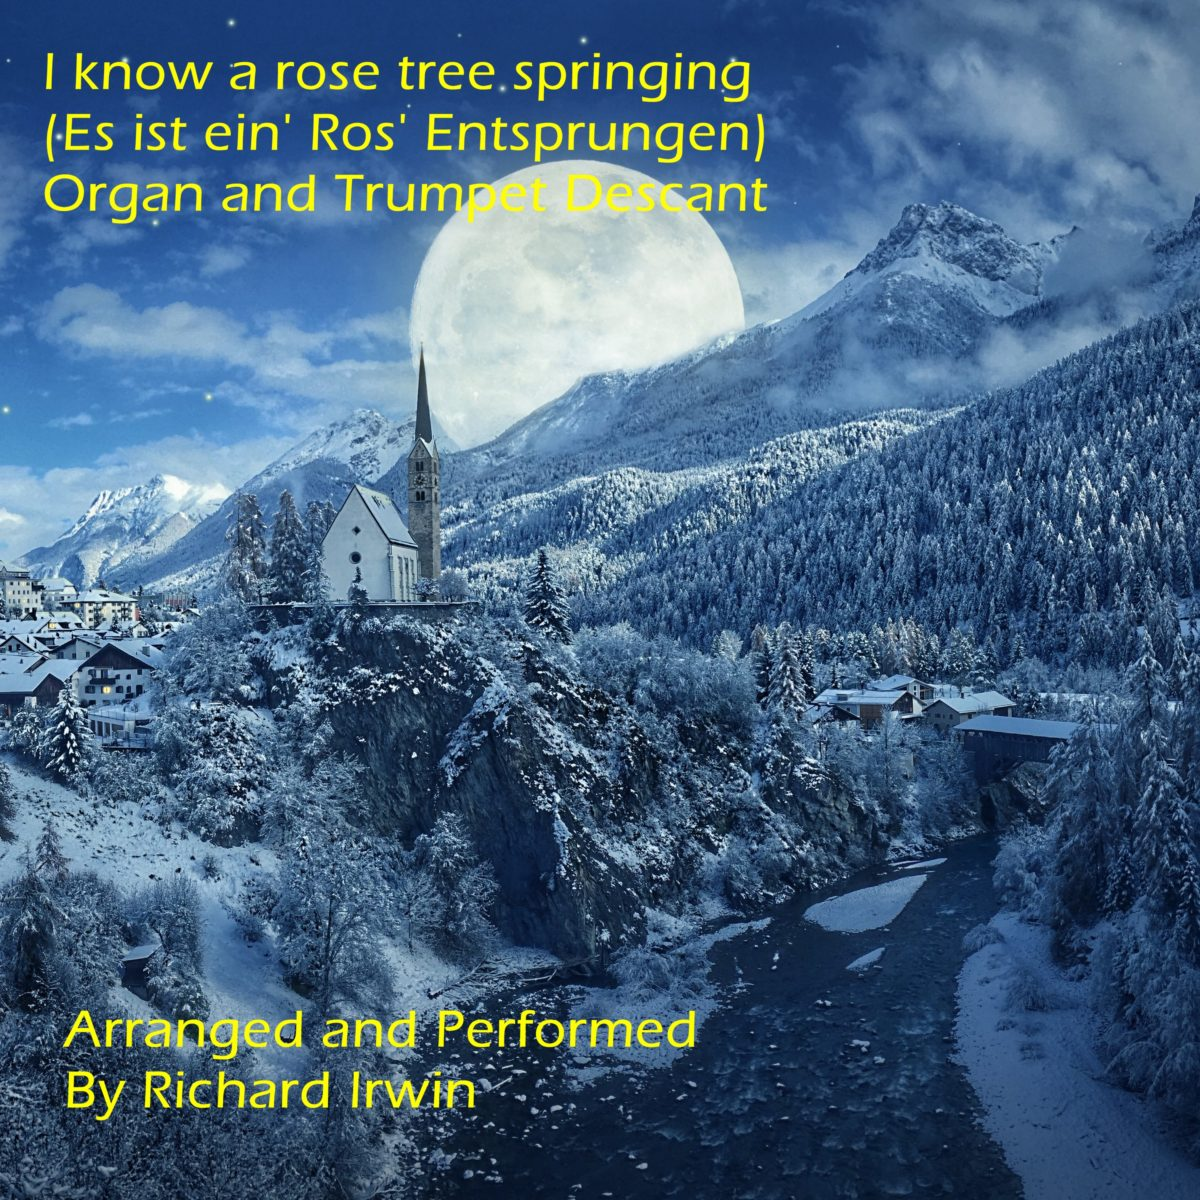 I Know A Rose Tree Springing (Es Is Ein Ros Entsprungen – 3 Verses) – Organ & Trumpet Descant